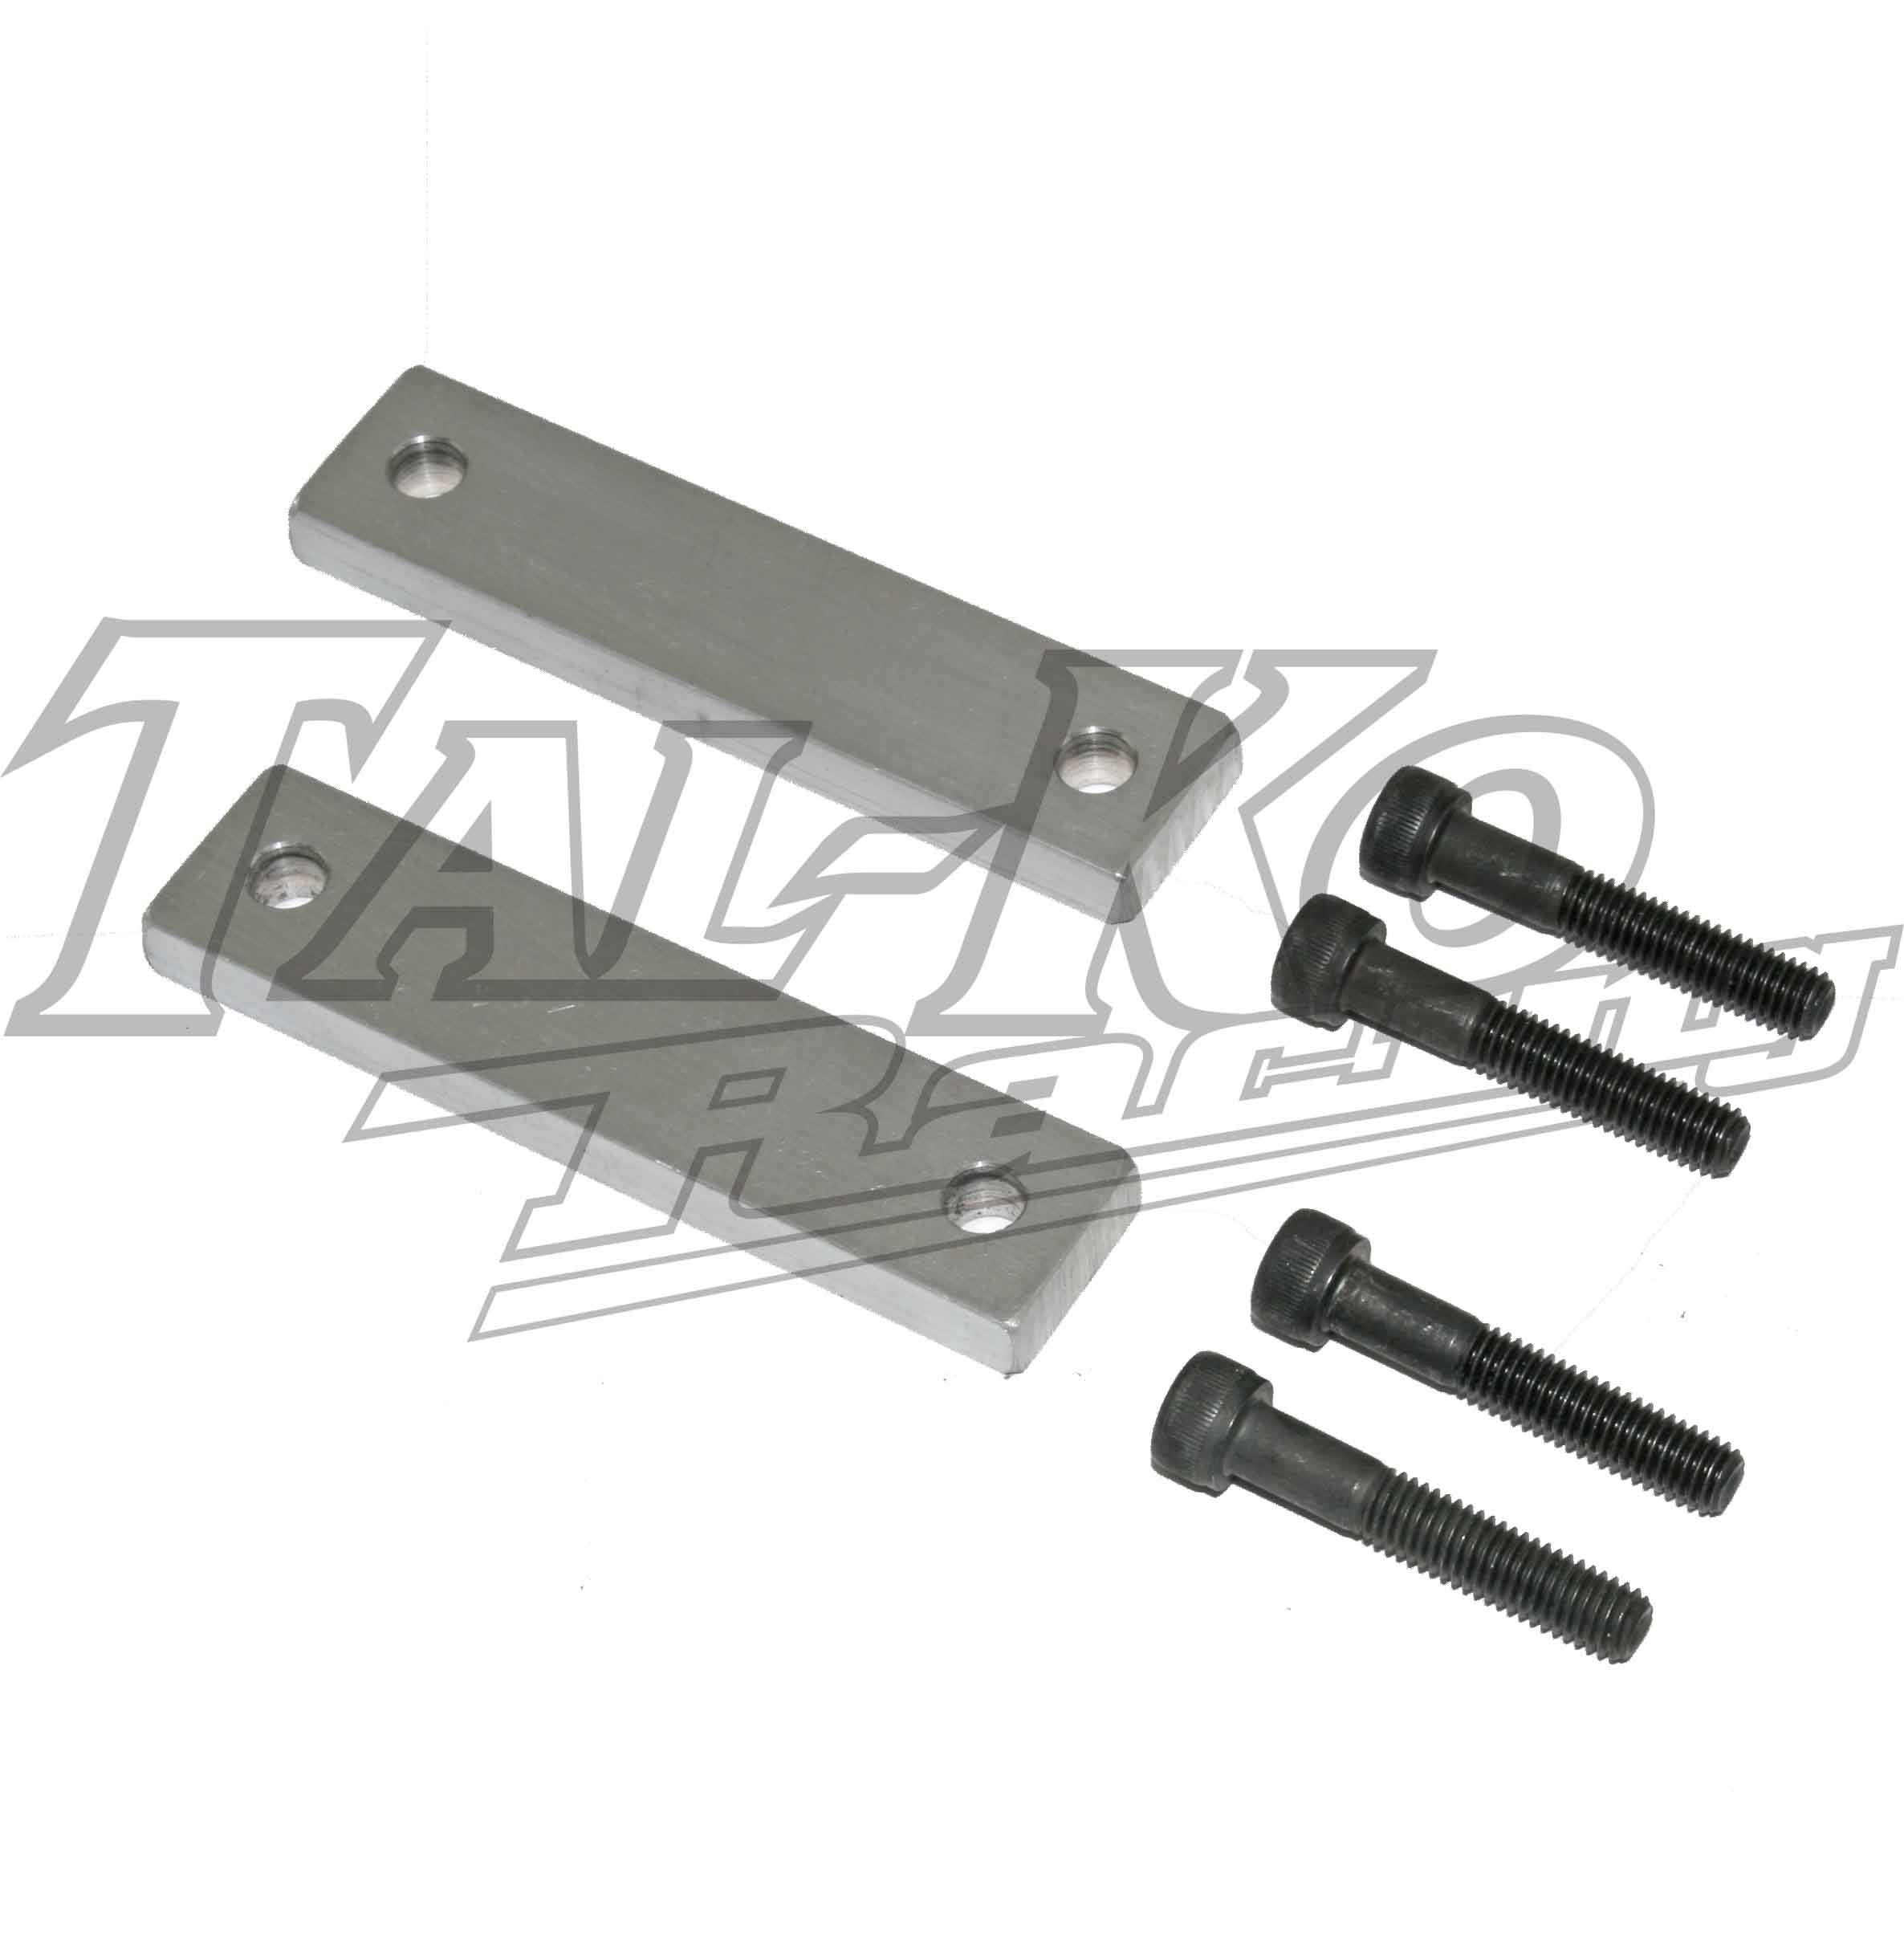 TKM K4S MOUNT RISER BLOCK SET 2